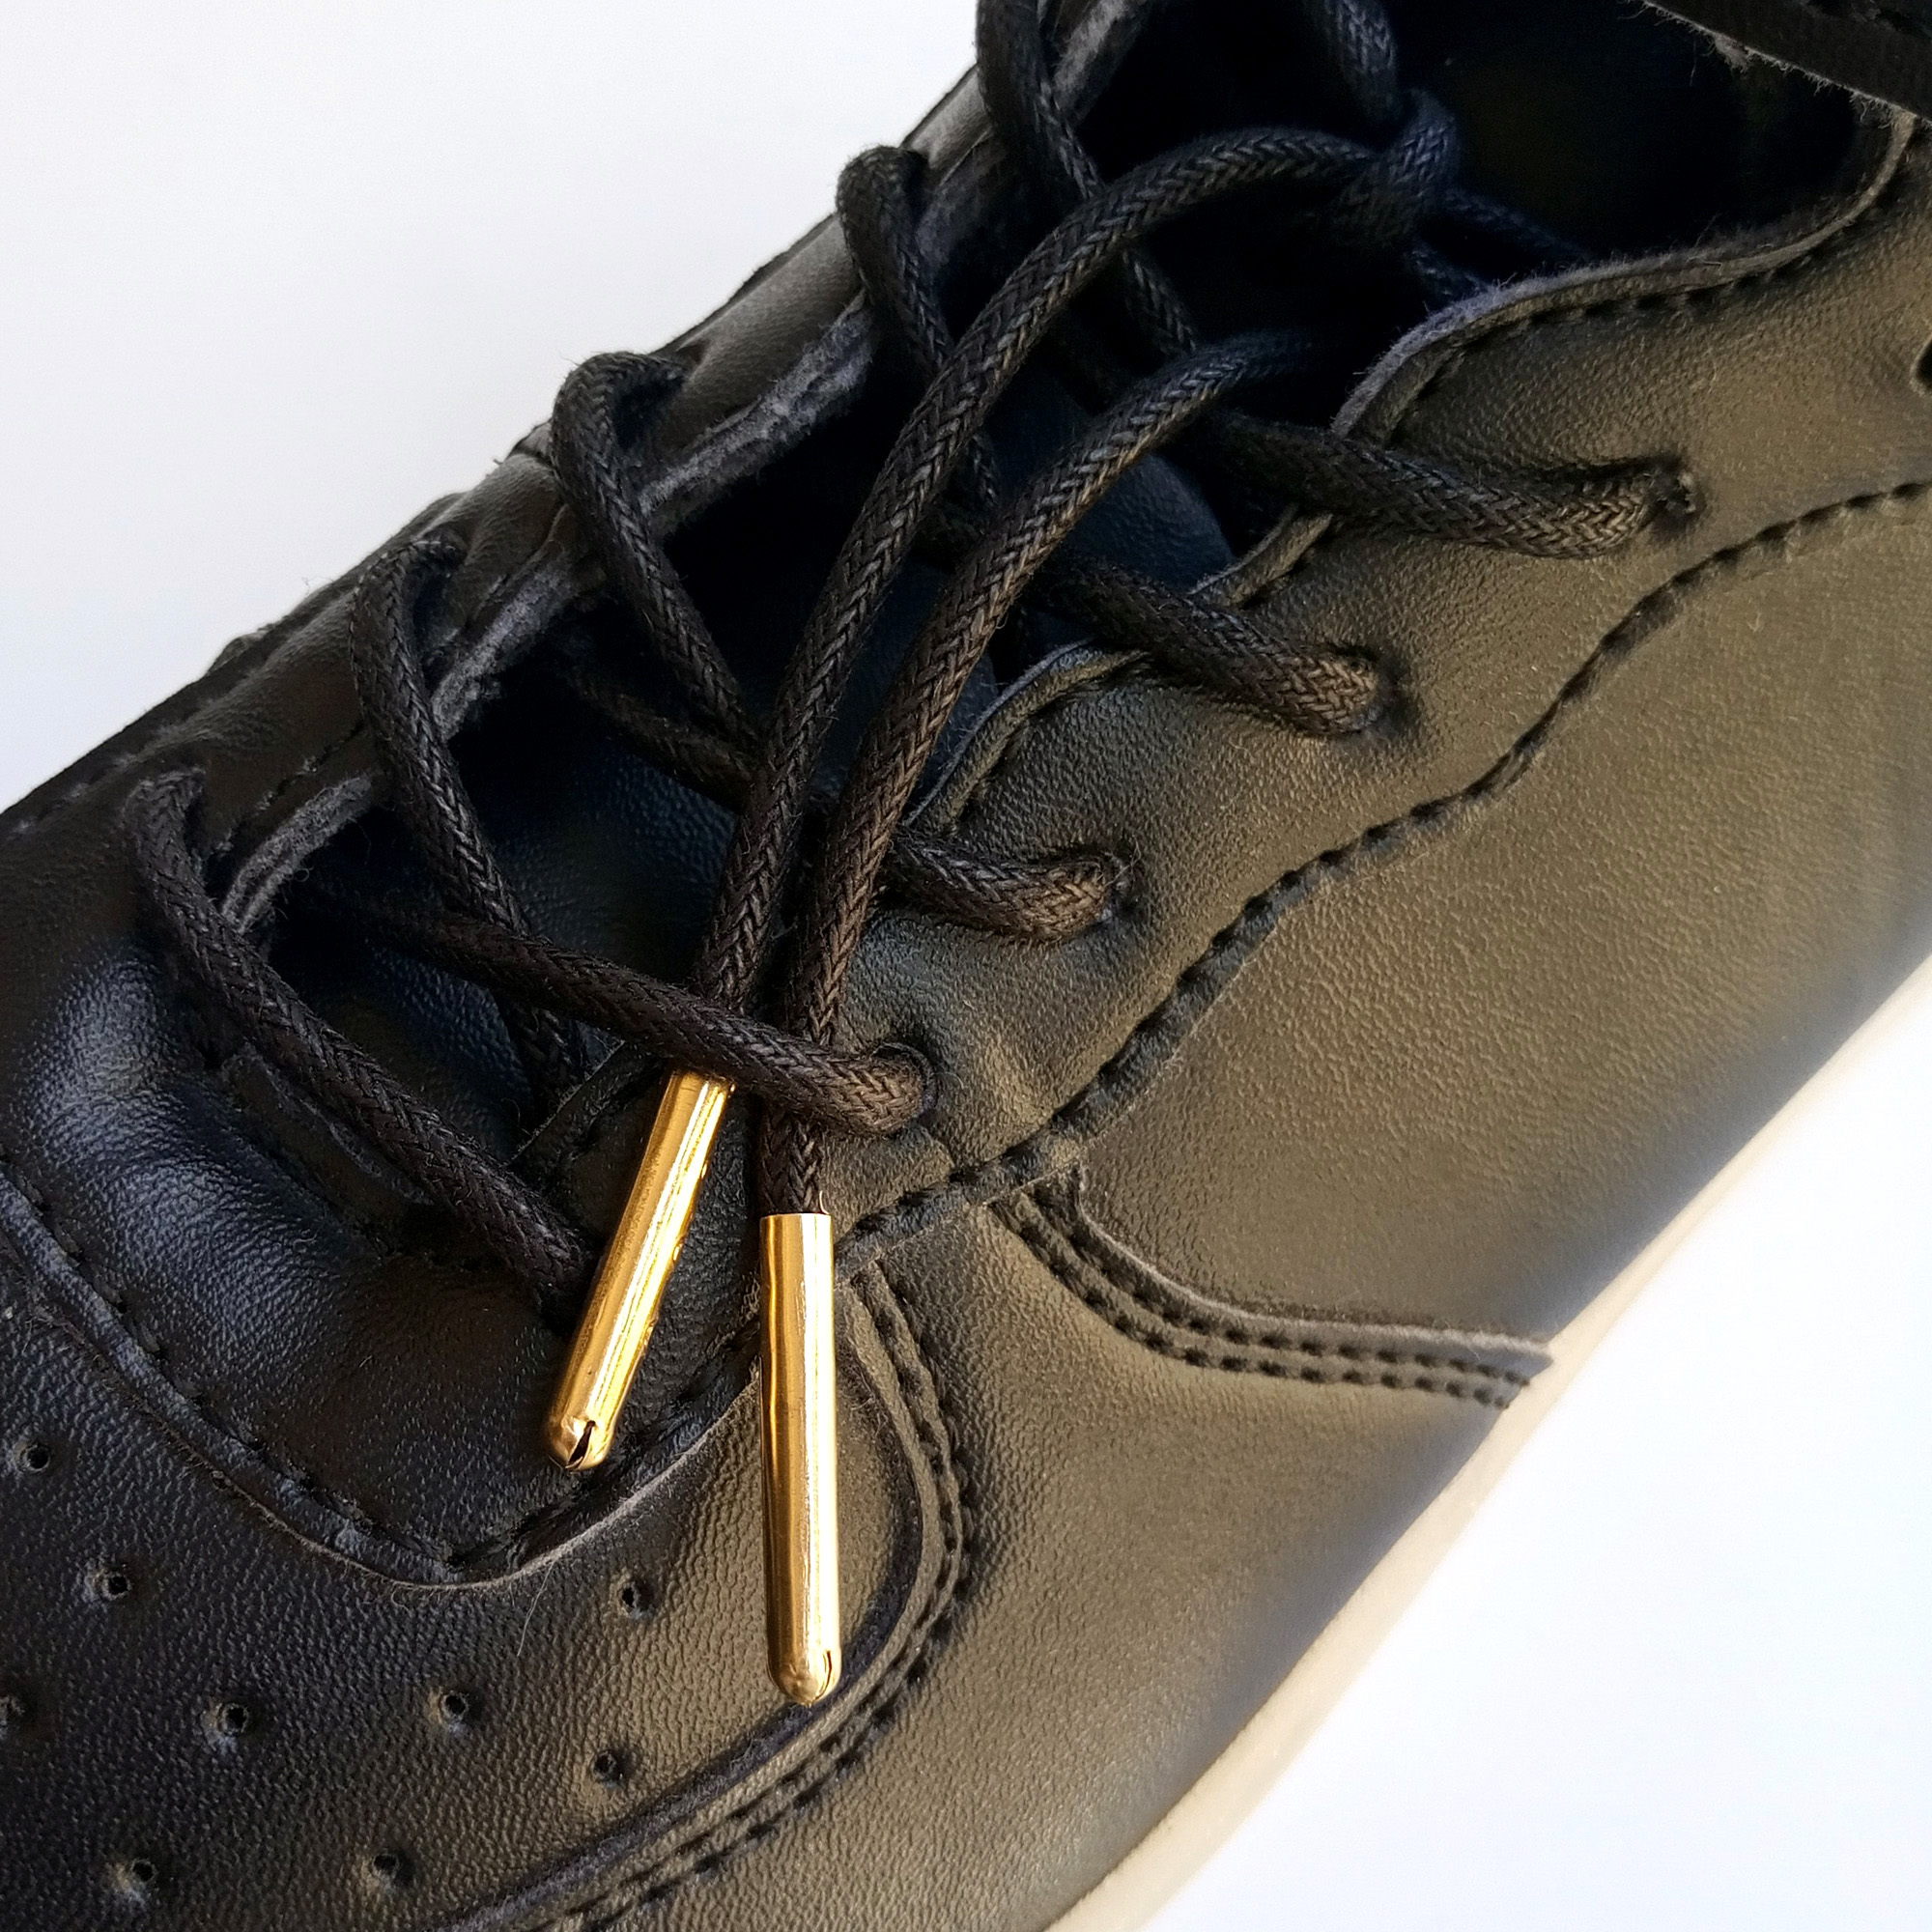 1Pair Flat Round Waxed Cotton Dress Shoelaces Polyester Laces with Gold Silver Gun Copper Metal Tips Fit All Sneaker Shoes Boots